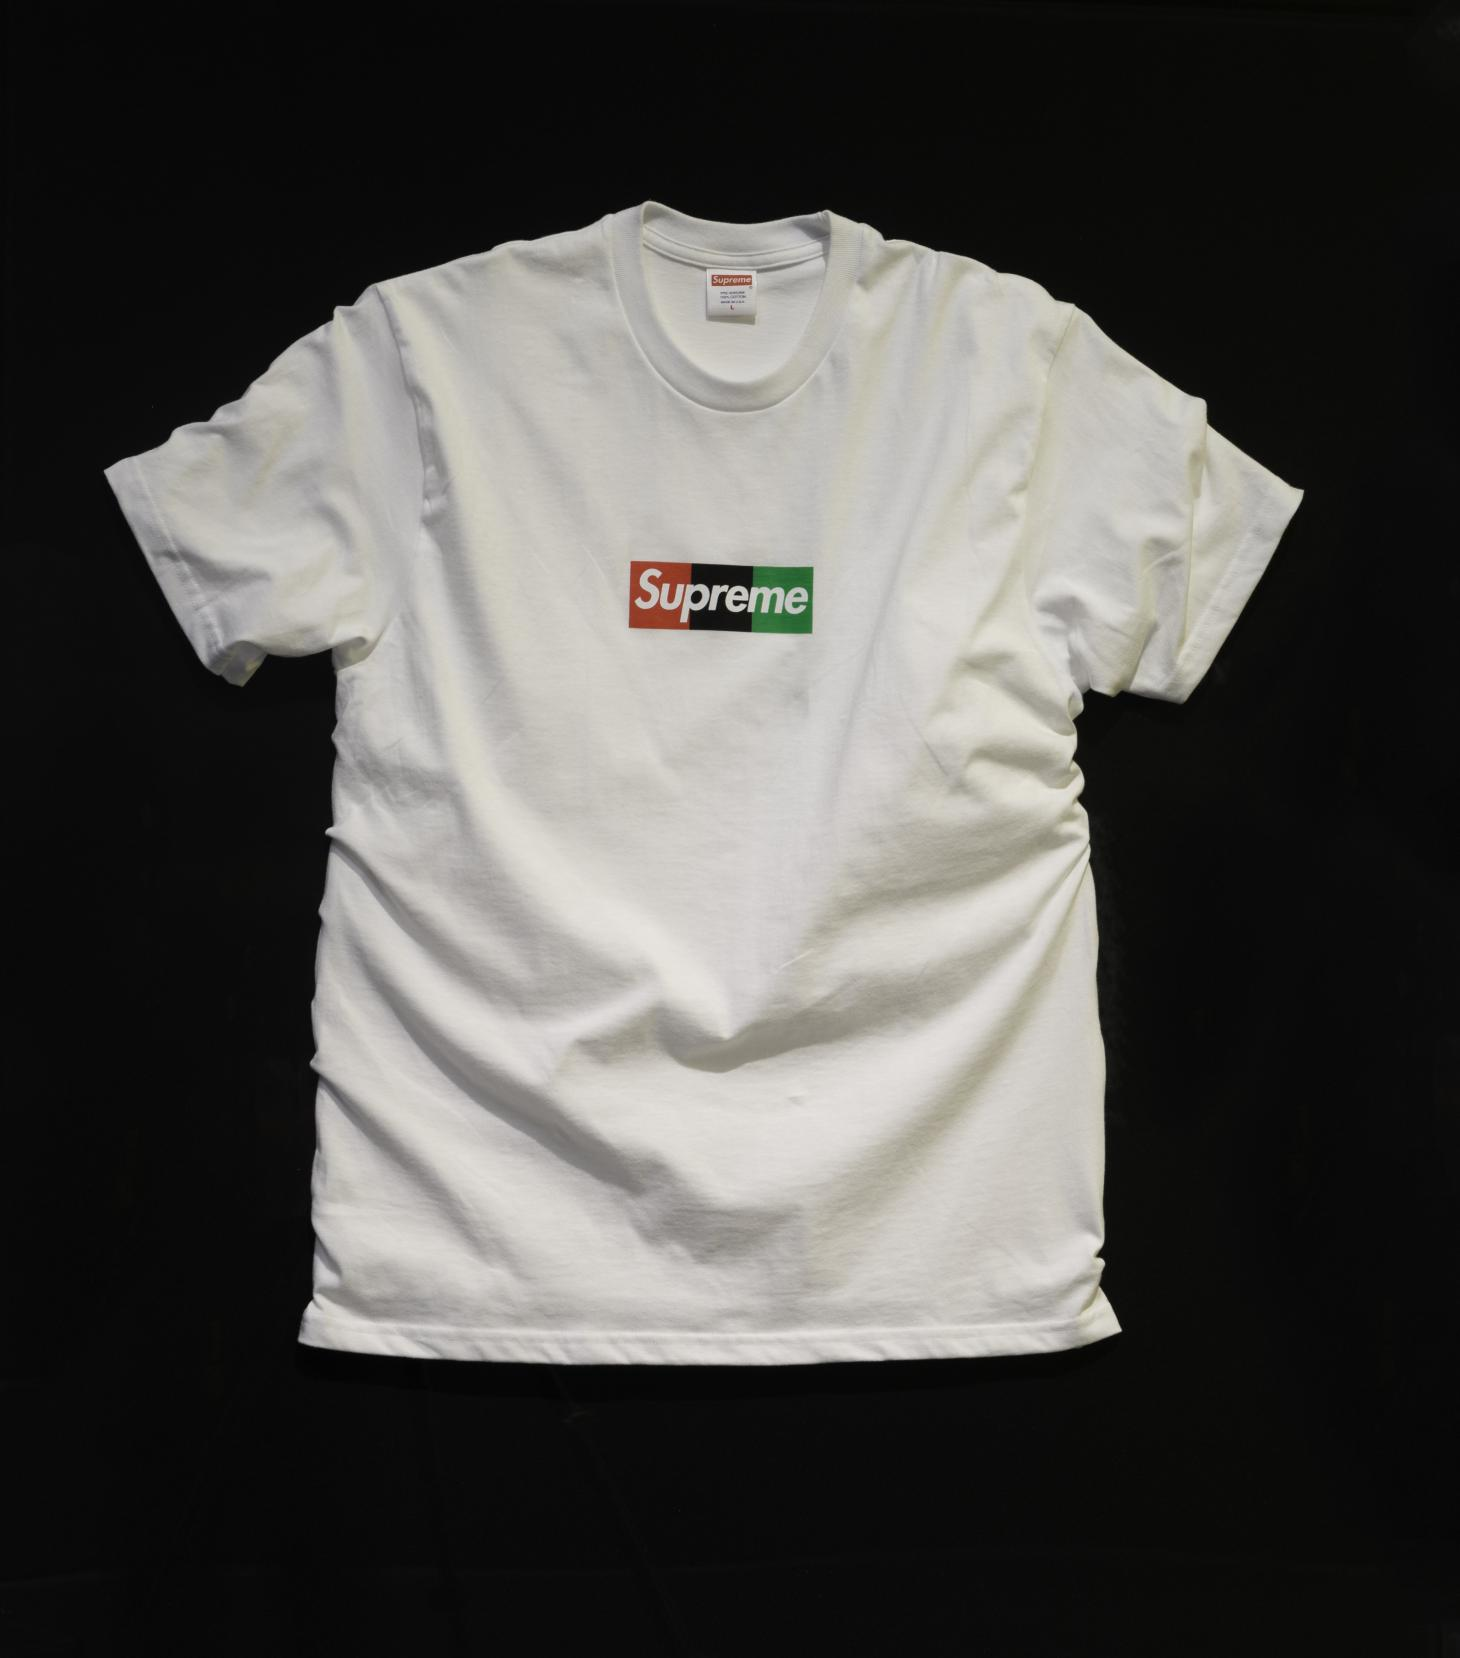 Spreme t-shirt designed by Virgil Abloh